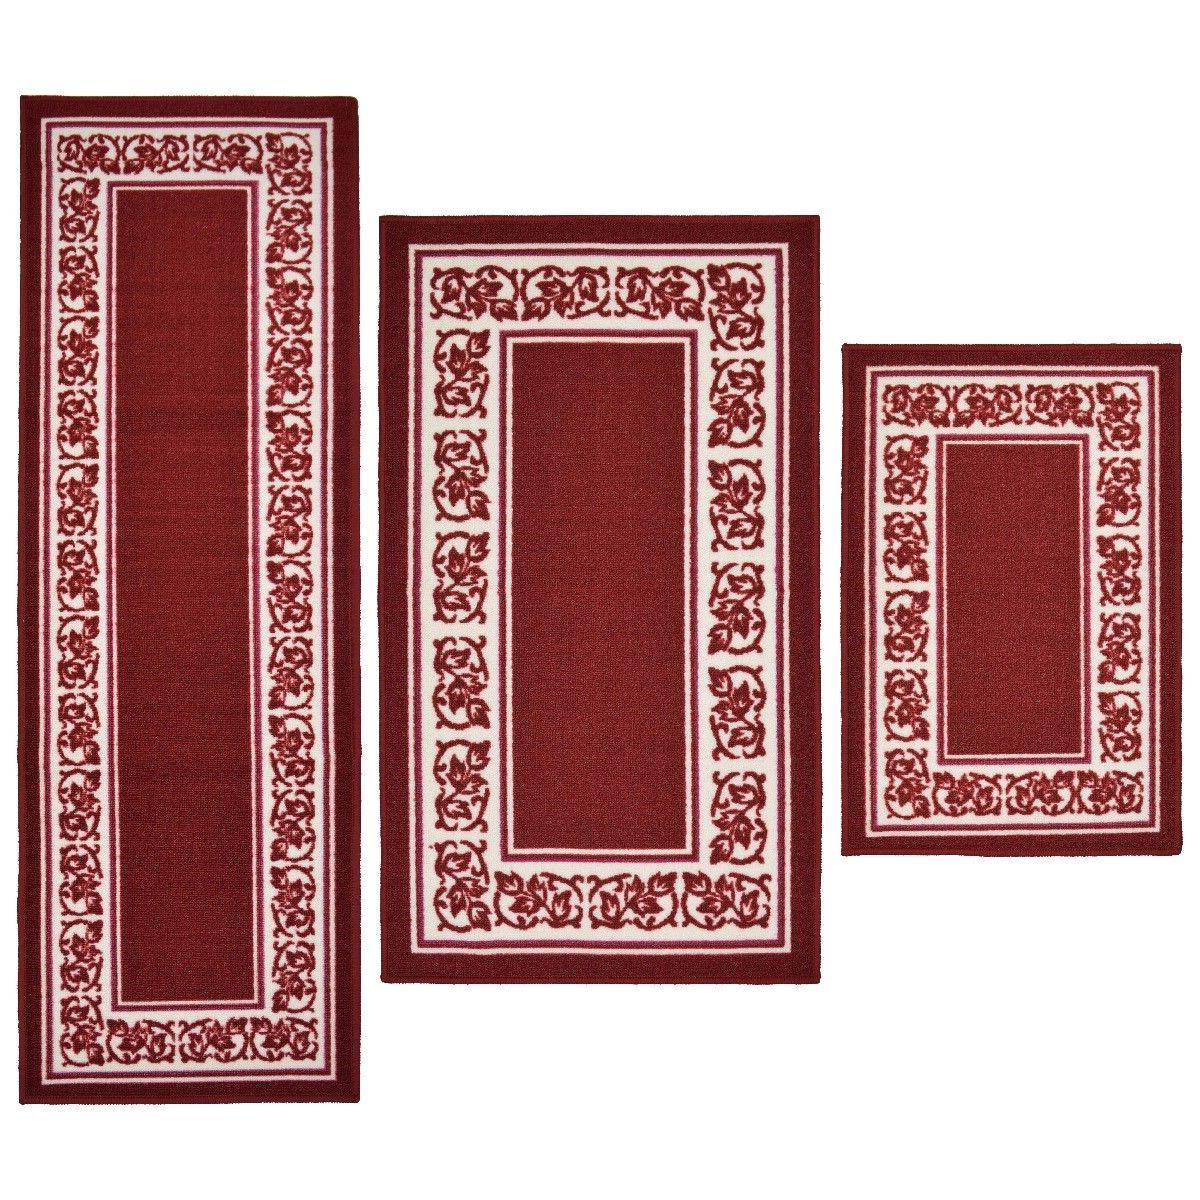 Throw Rugs 3 Piece Set Red Kitchen Bath Bedroom Area Floor M